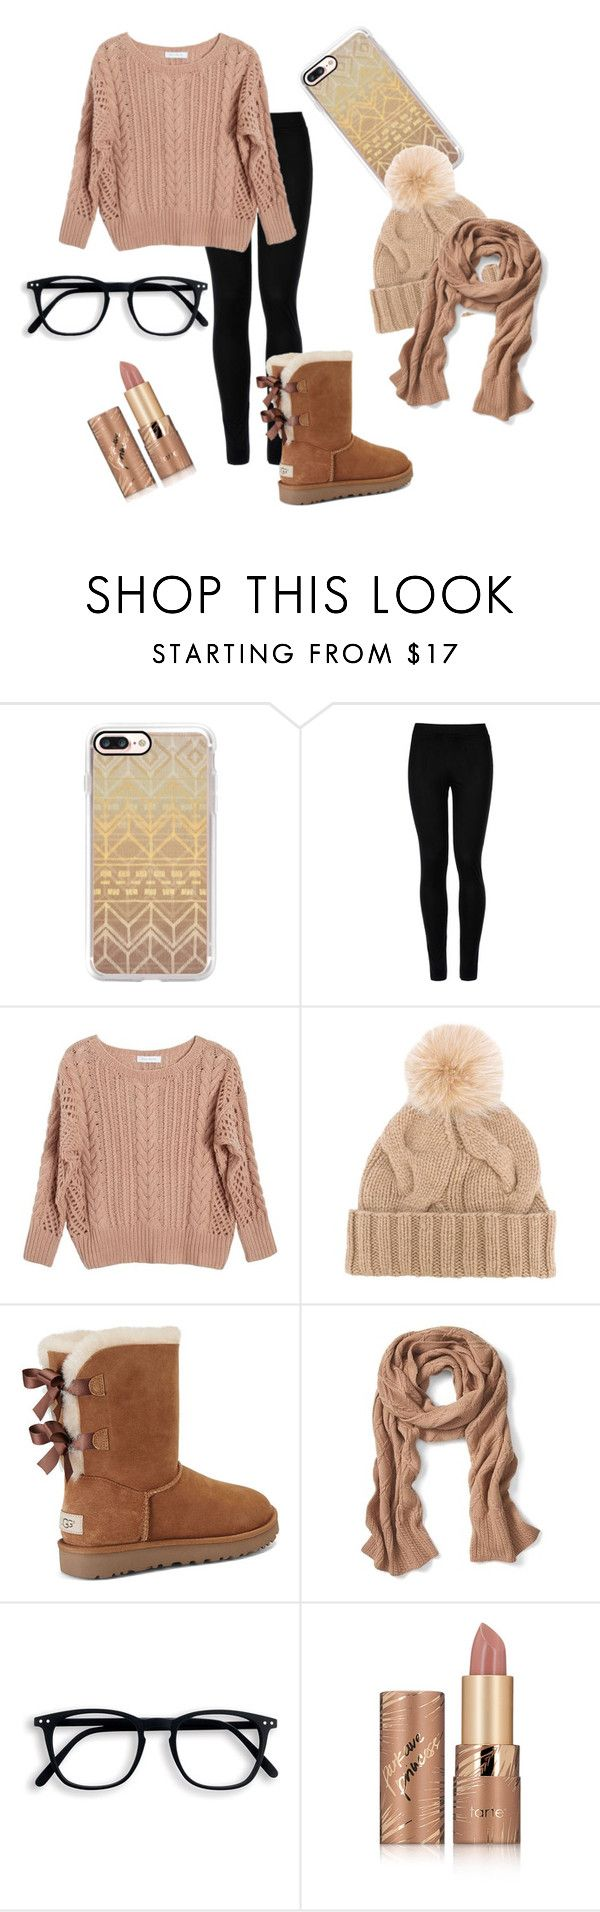 """Fall"" by electraz on Polyvore featuring Casetify, Wolford, Ryan Roche, Loro Piana, UGG, Banana Republic and tarte"